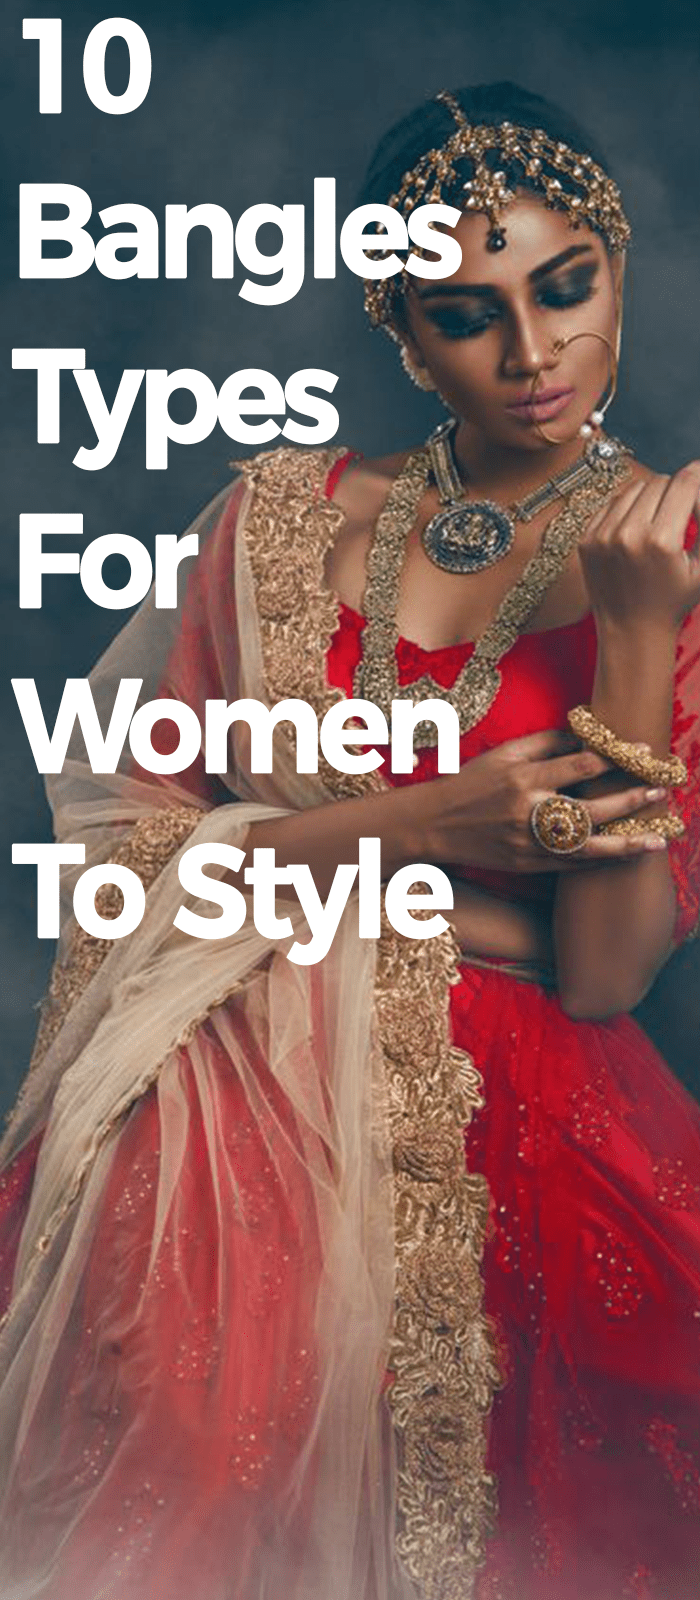 10 Bangles Types For Women To Style!